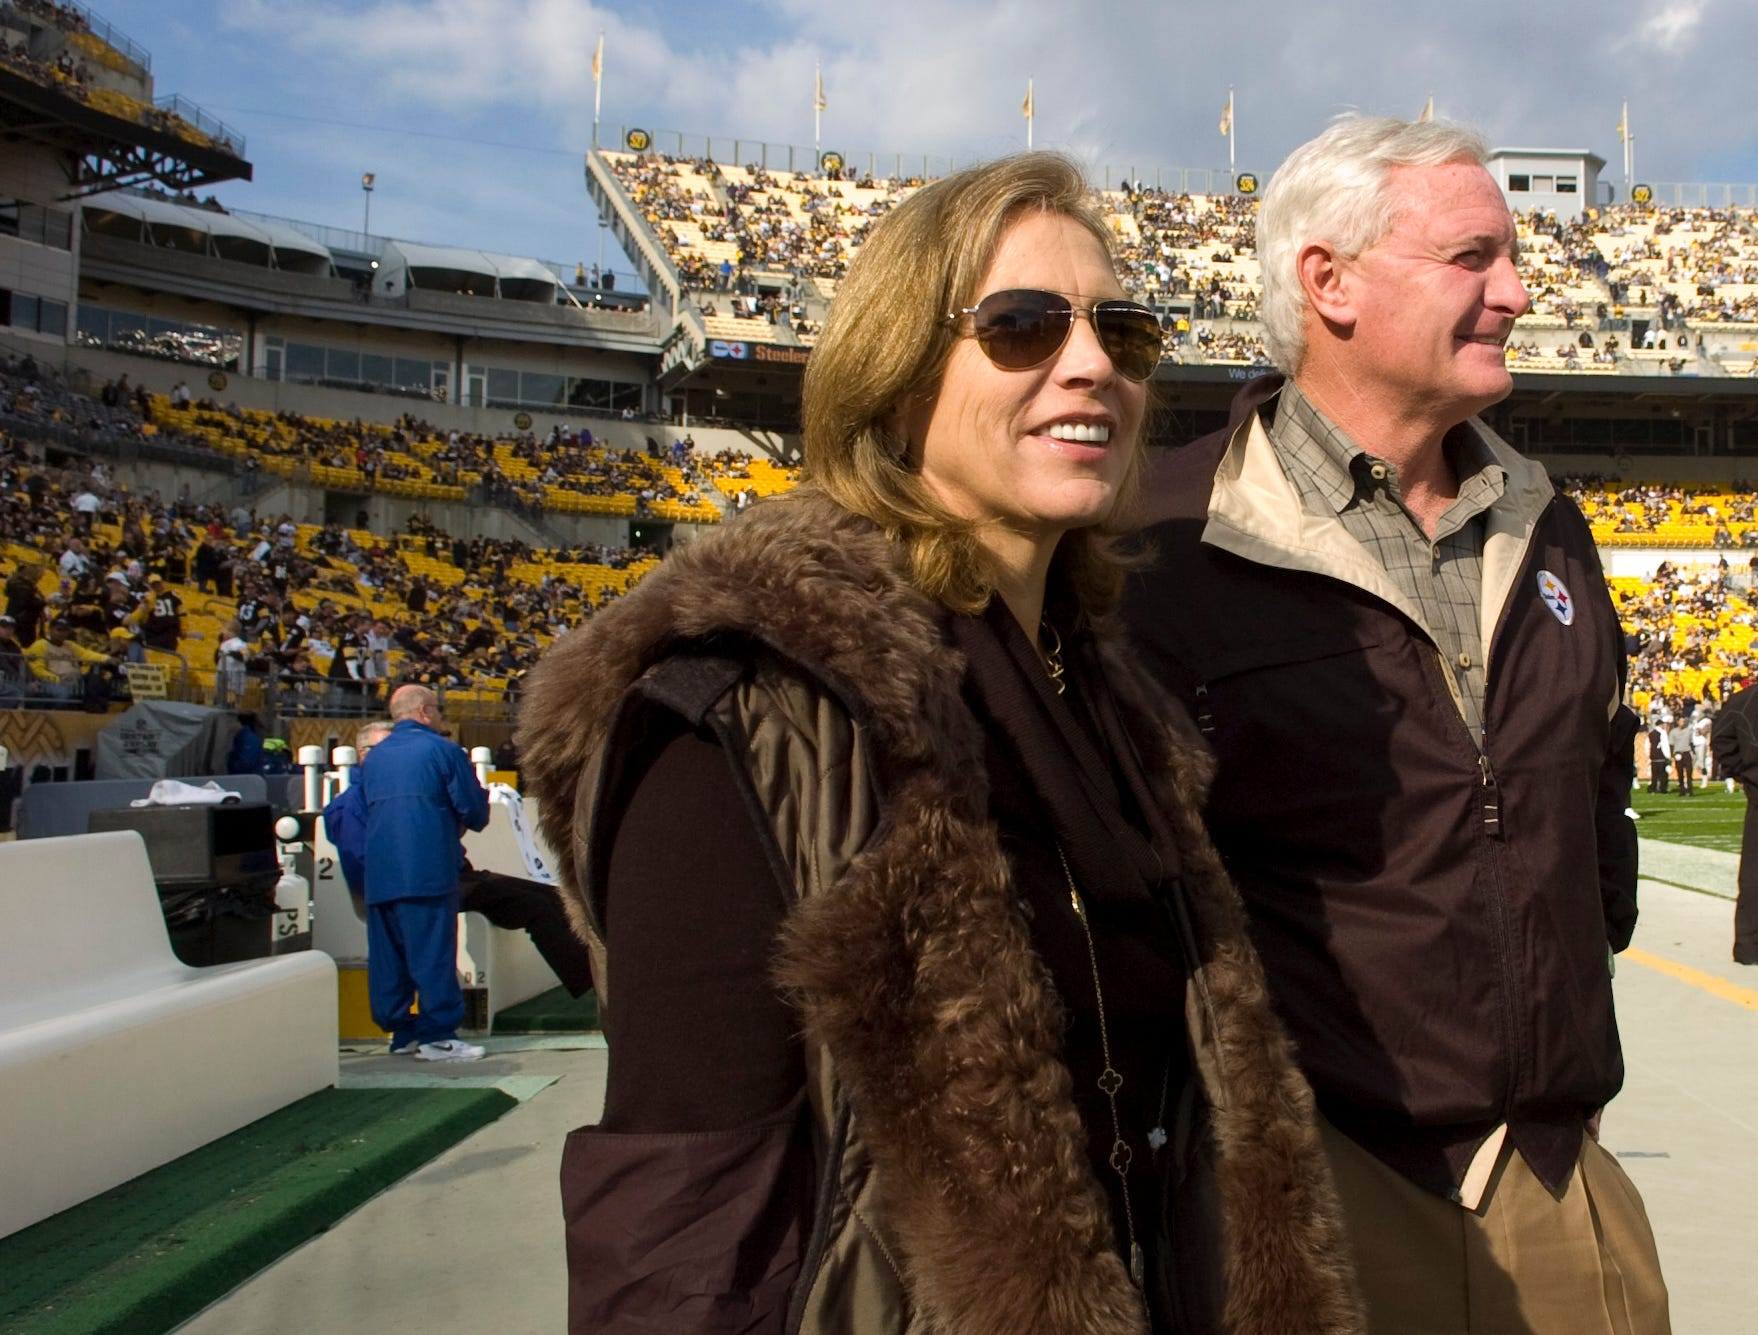 Jimmy Haslam and his wife, Dee, talk before the Pittsburgh Steelers and the Oakland Raiders game Nov. 21, 2010 in Pittsburgh, Penn. Jimmy Haslam became a partner in the Pittsburgh Steelers in 2008.